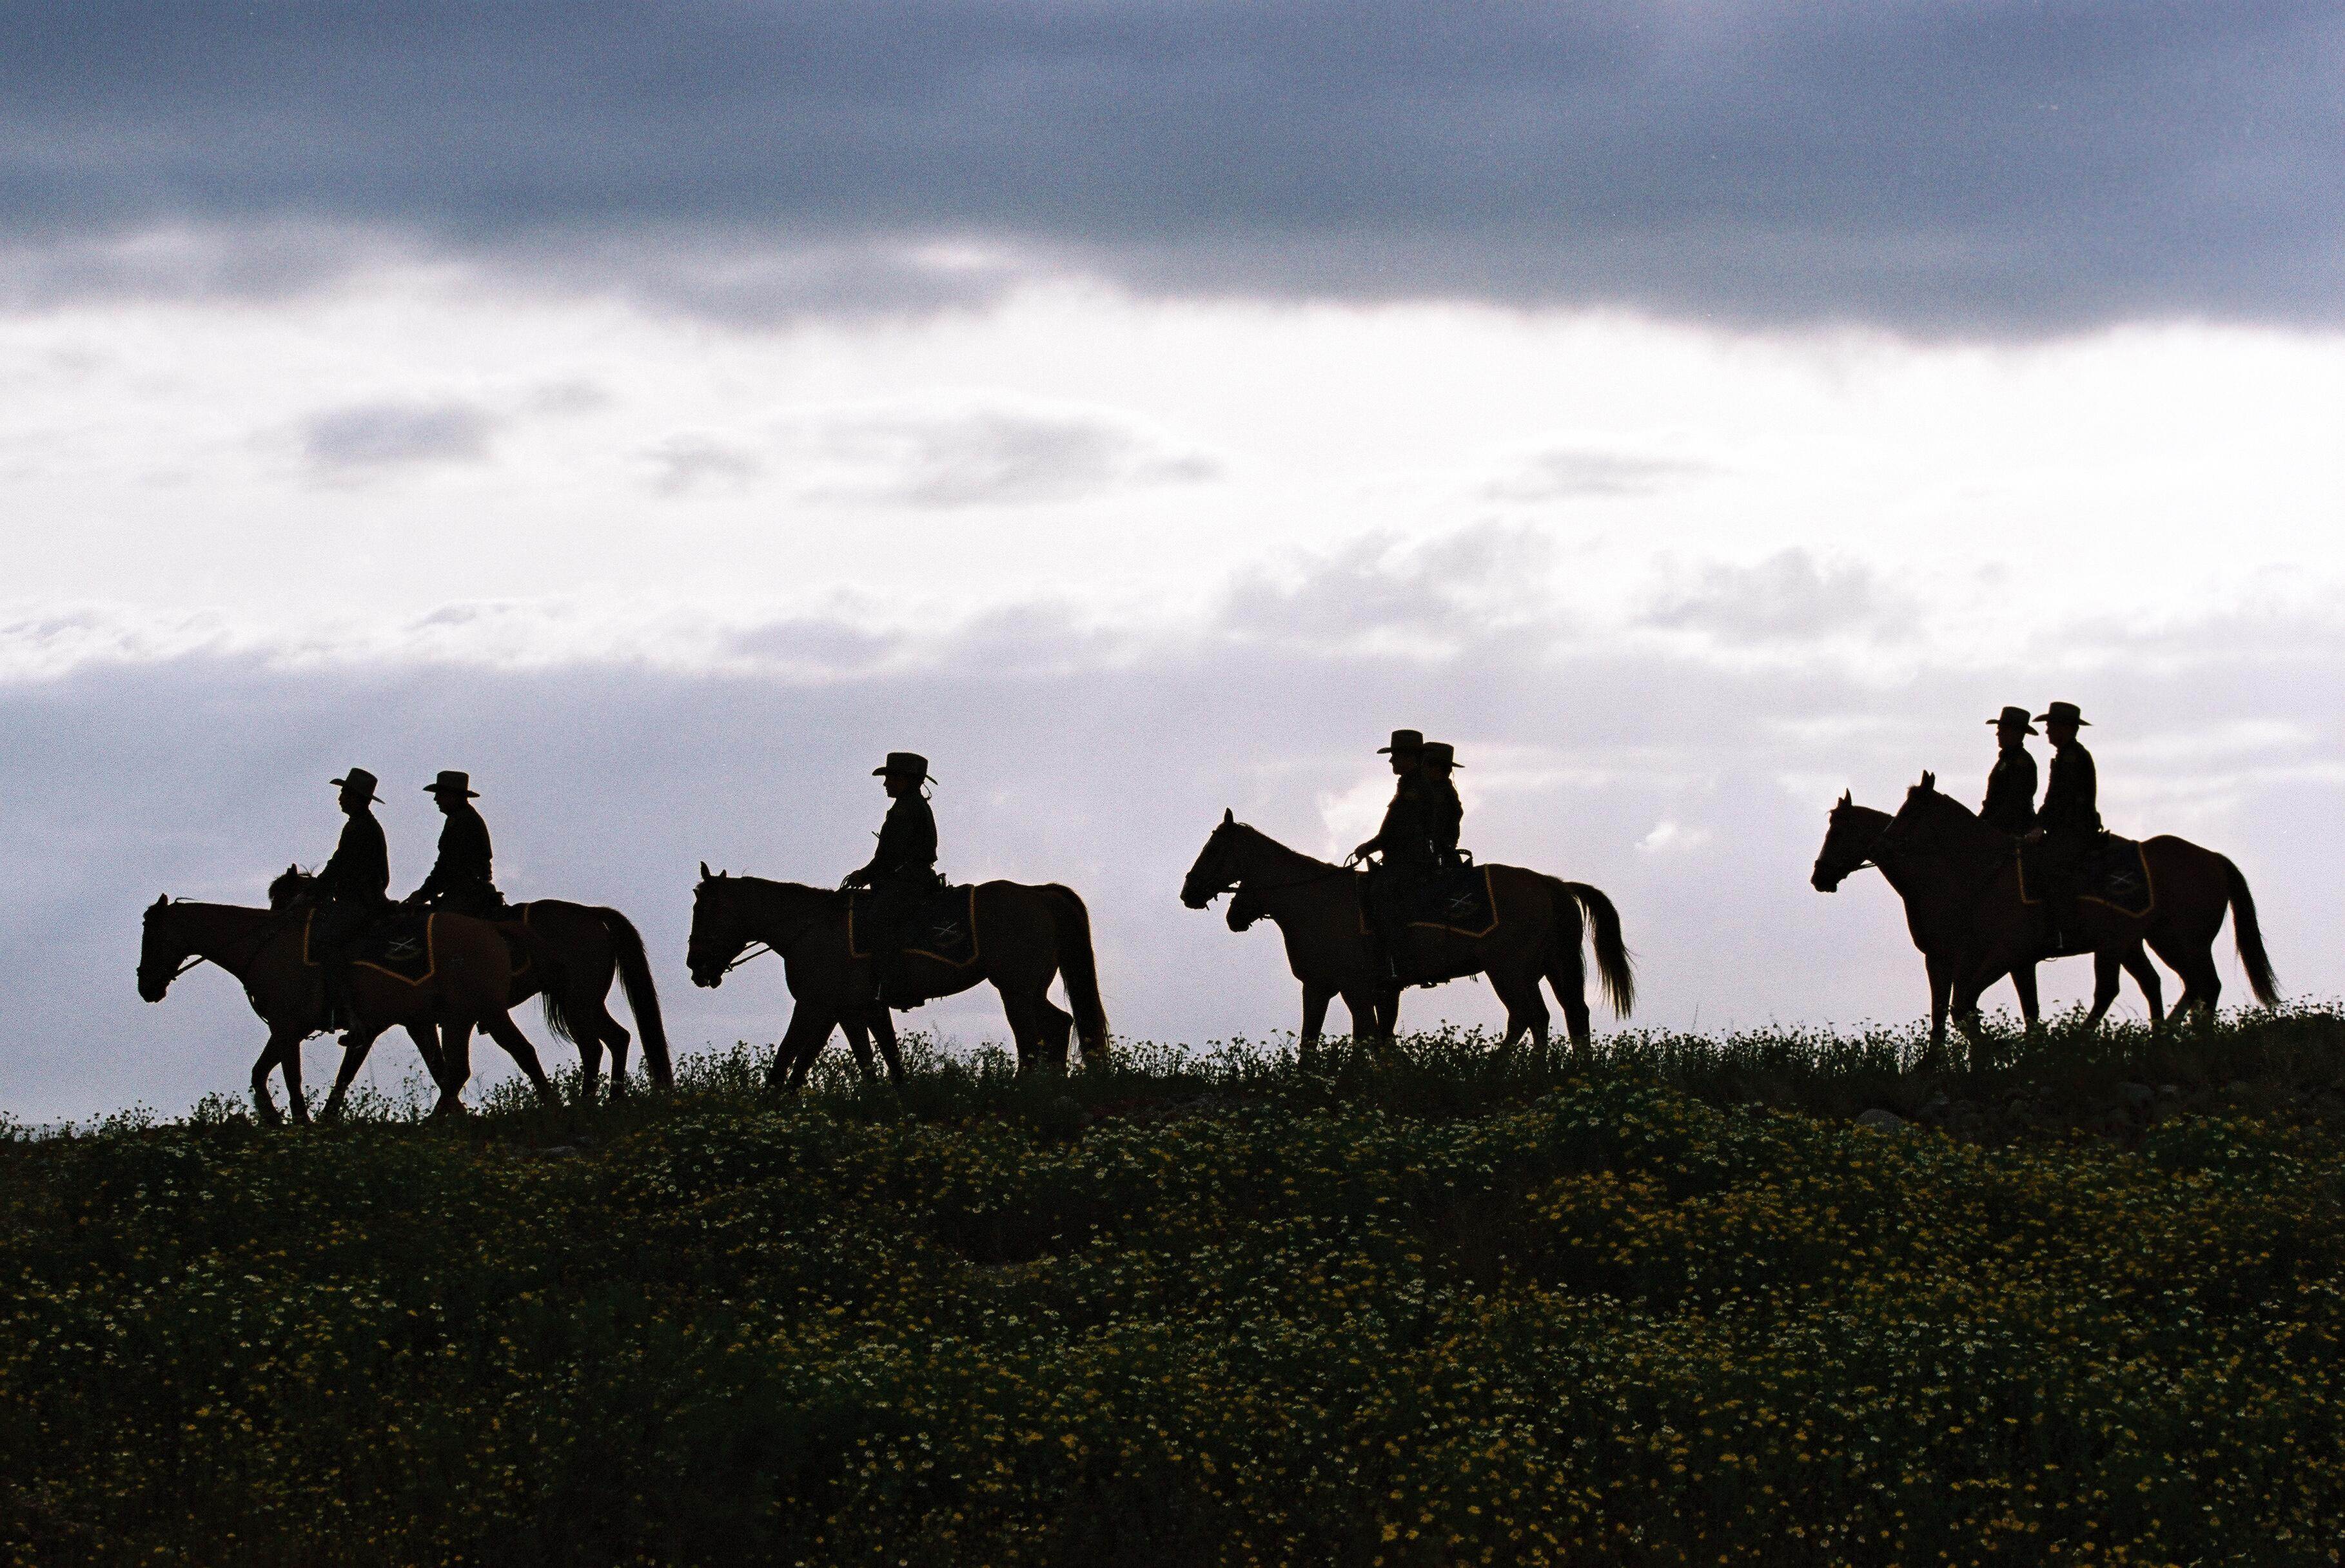 U.S. Border Patrol utilizes horses in difficult terrain to ensure the safety of the nation's border.